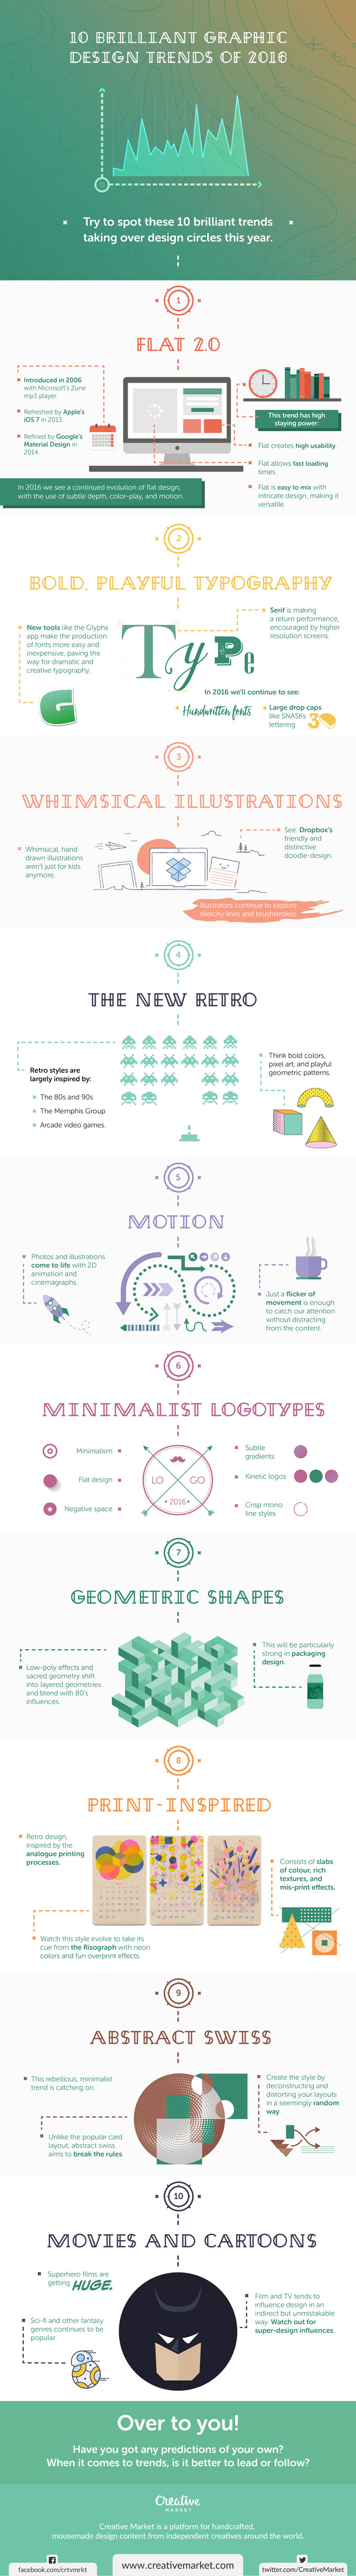 10-Brilliant-Graphic-Design-Trends-2016-Infographic